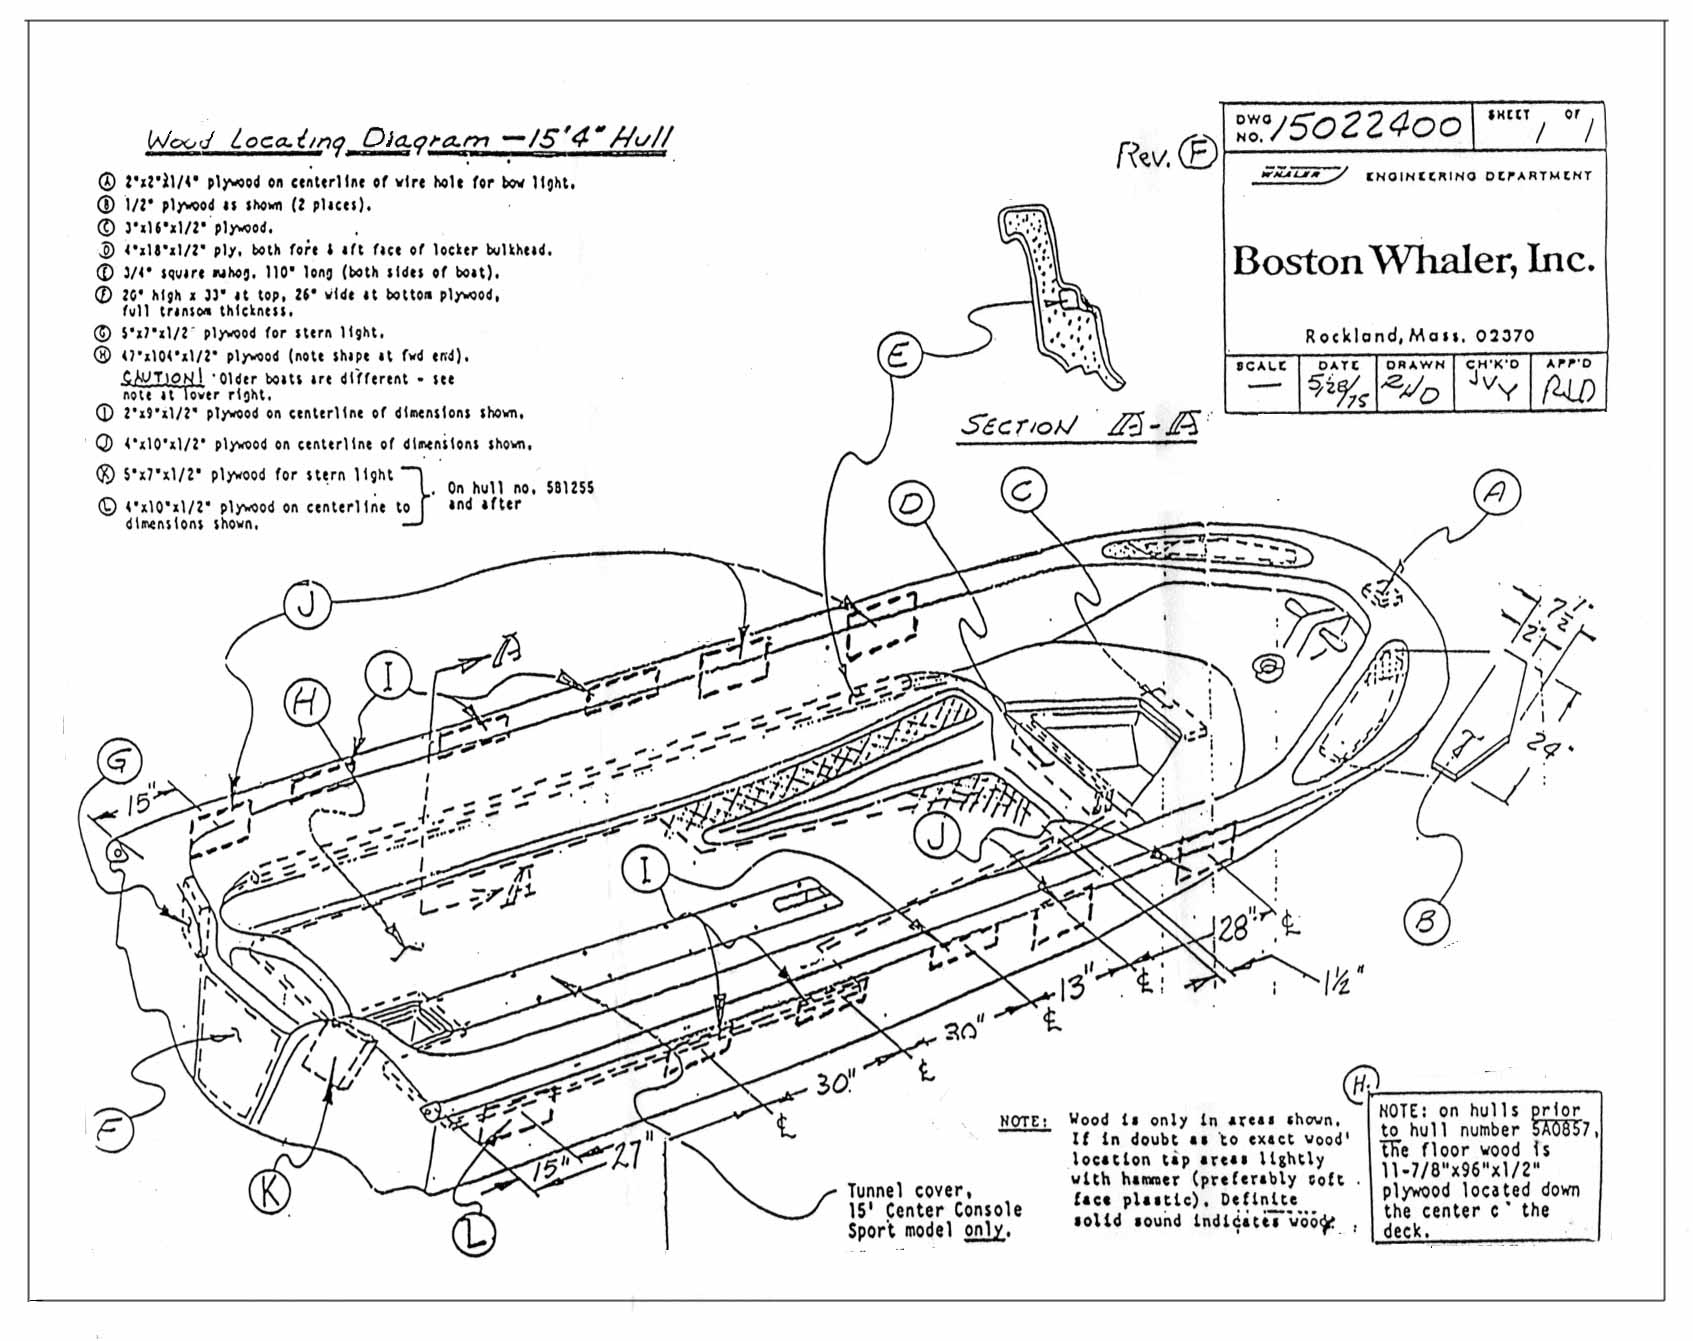 boston whaler wiring diagram getting ready with wiring diagram Boston Whaler 27